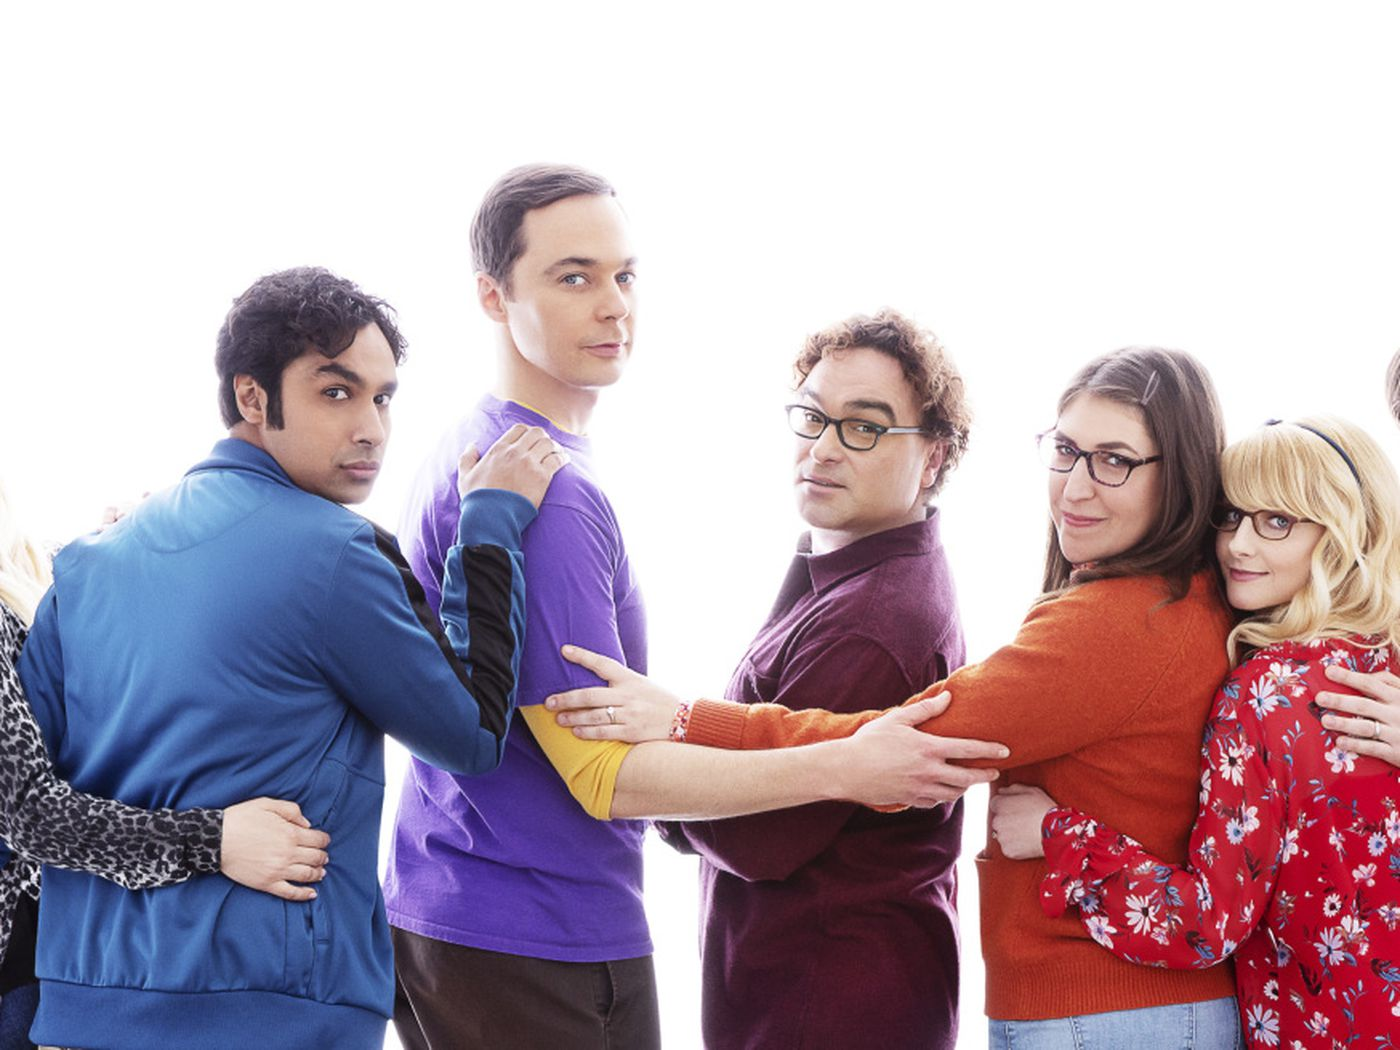 The Big Bang Theory Series Finale Explained Vox Rock by digitalninja on deviantart. the big bang theory series finale